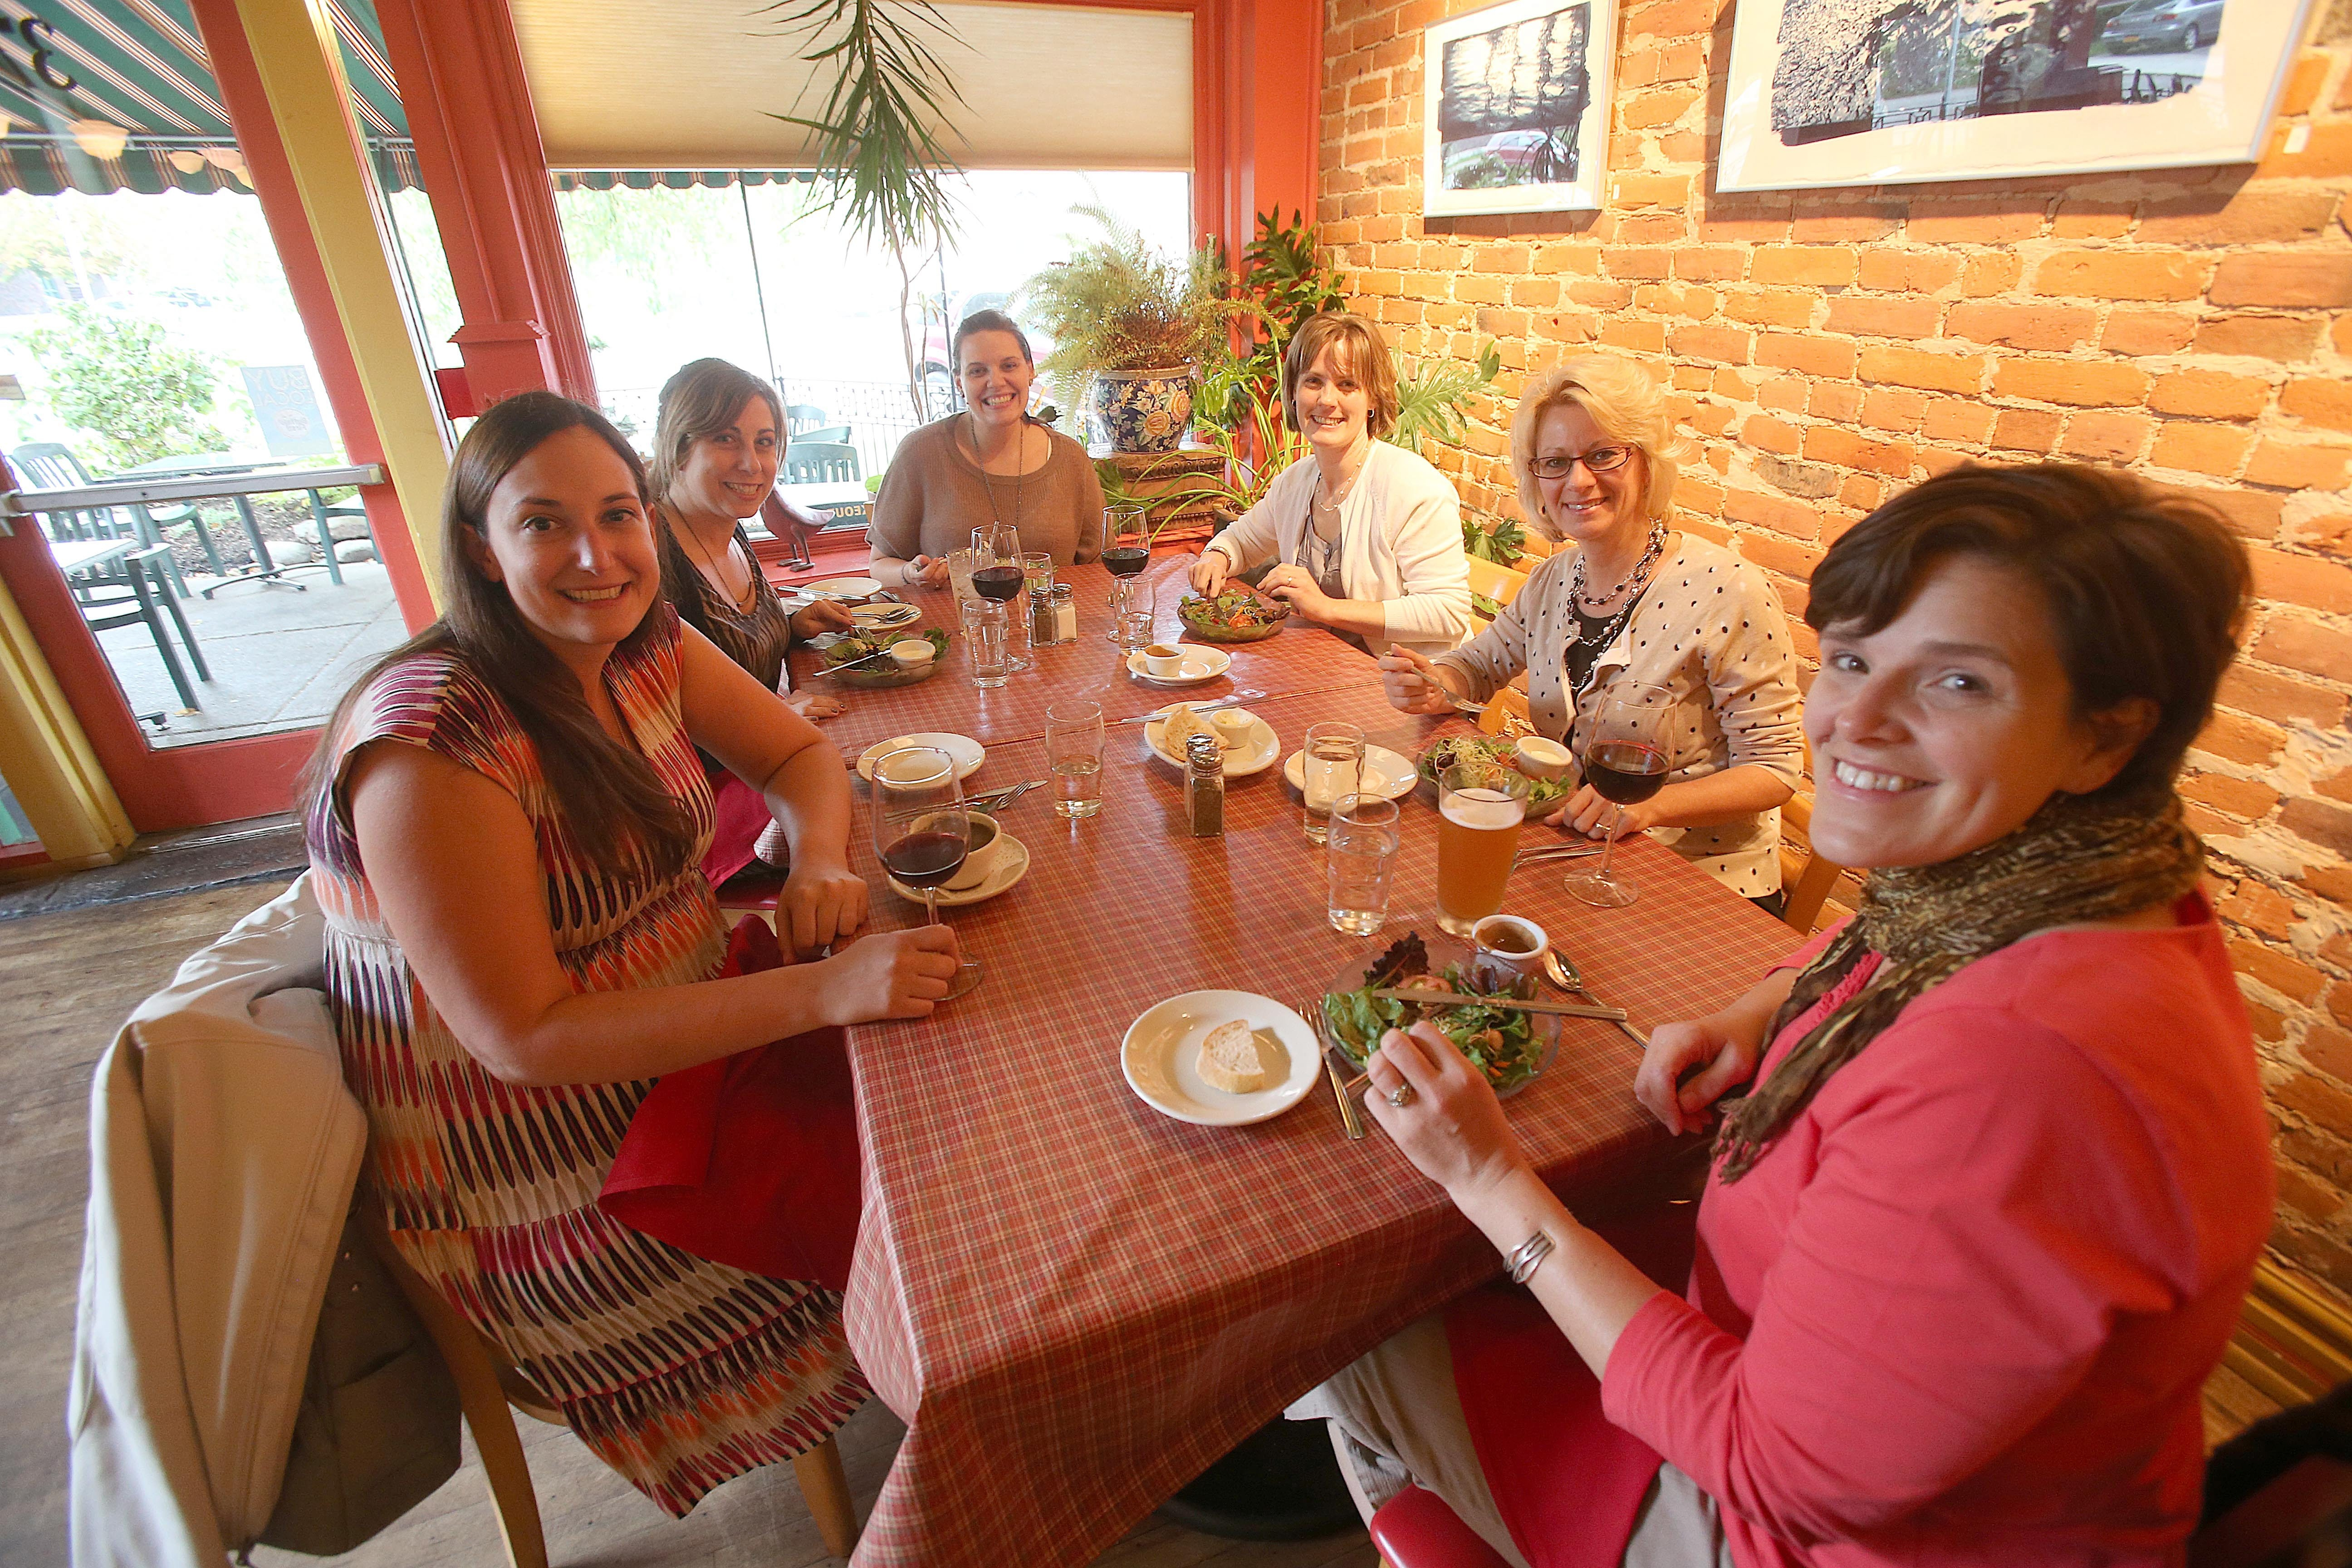 Photos by Robert Kirkham/Buffalo News    A group of women enjoy dinner and drinks at Betty's before going to a show at Shea's Performing Arts Center.